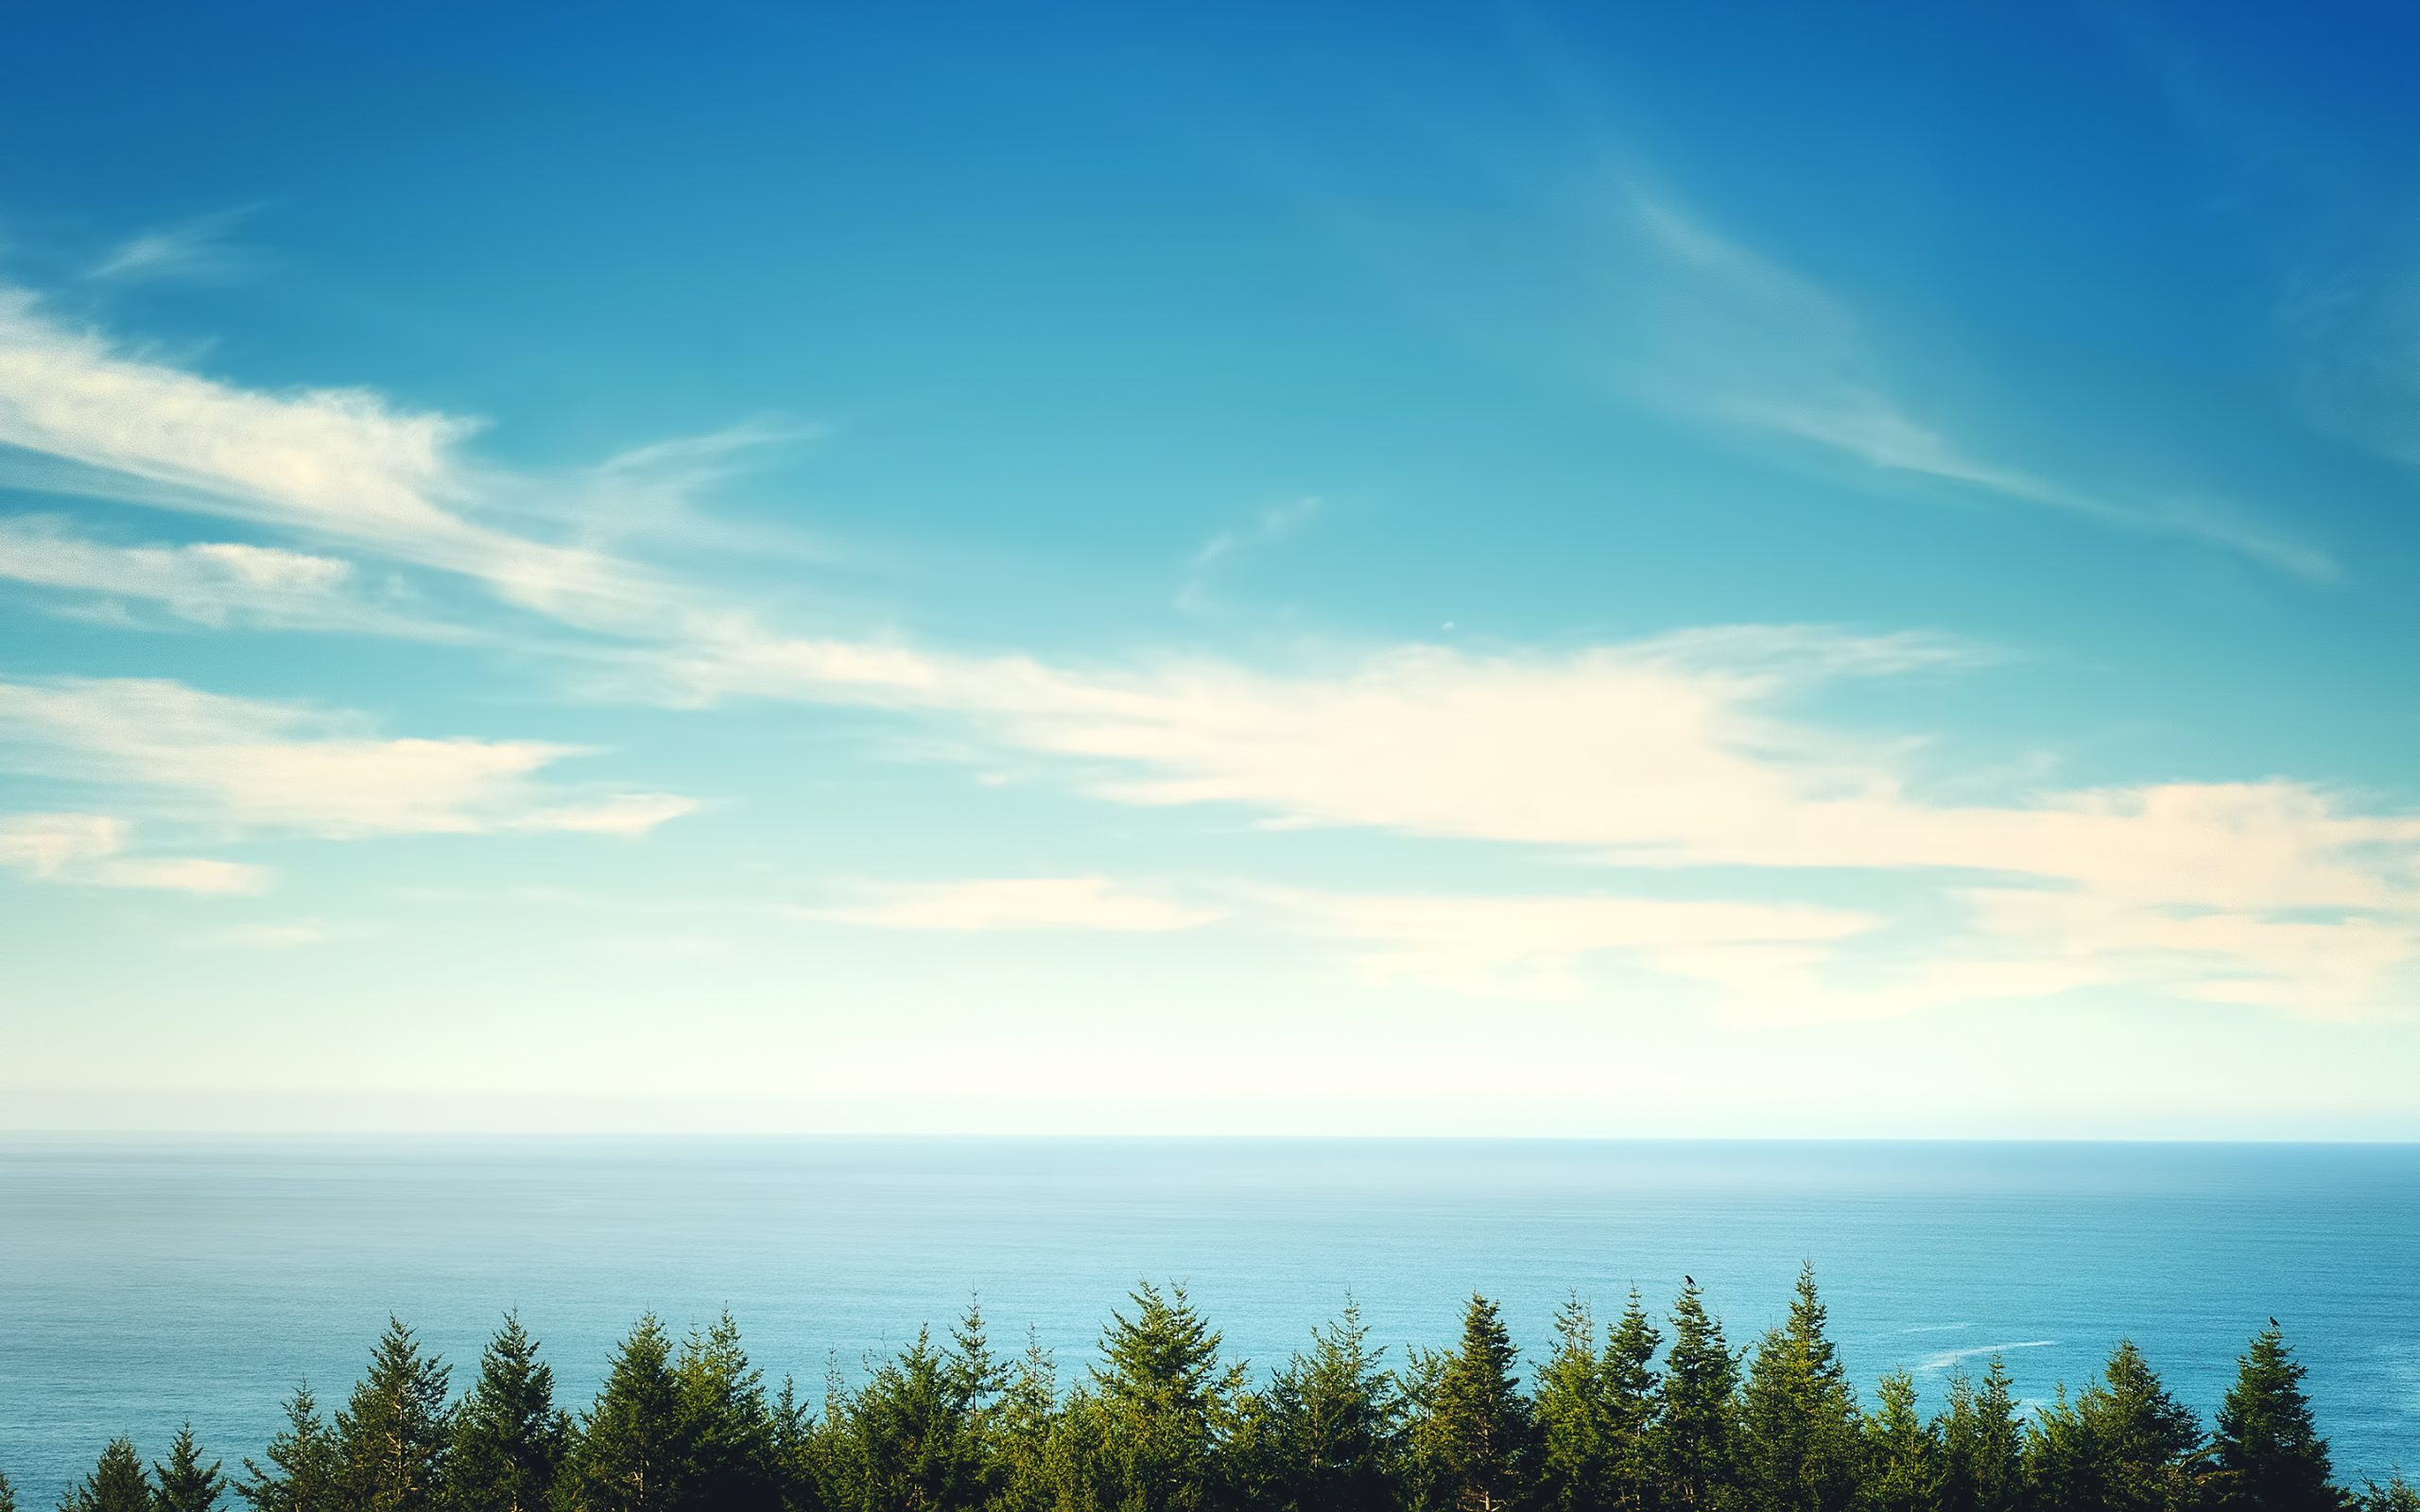 View of the ocean over trees